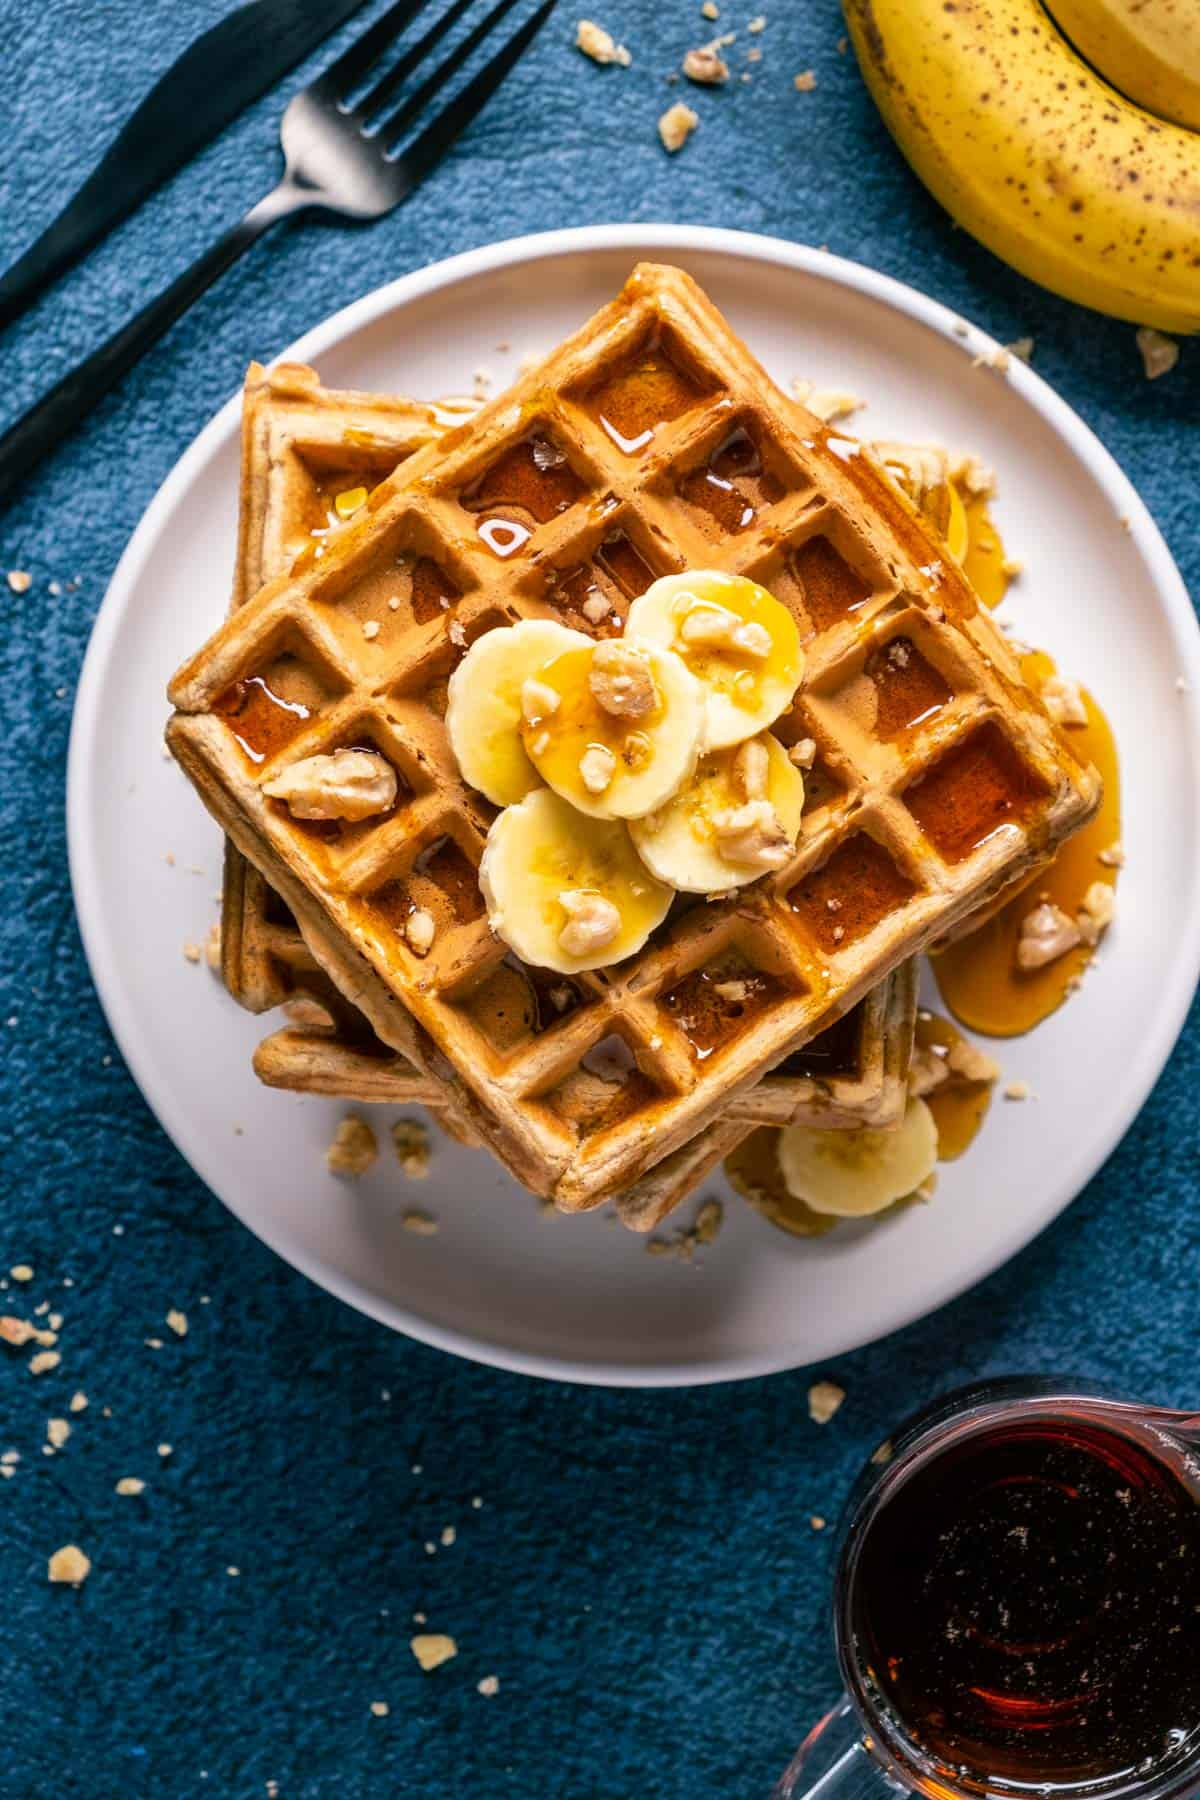 Overhead photo of a stack of vegan banana waffles topped with sliced banana, walnuts and syrup on a white plate.